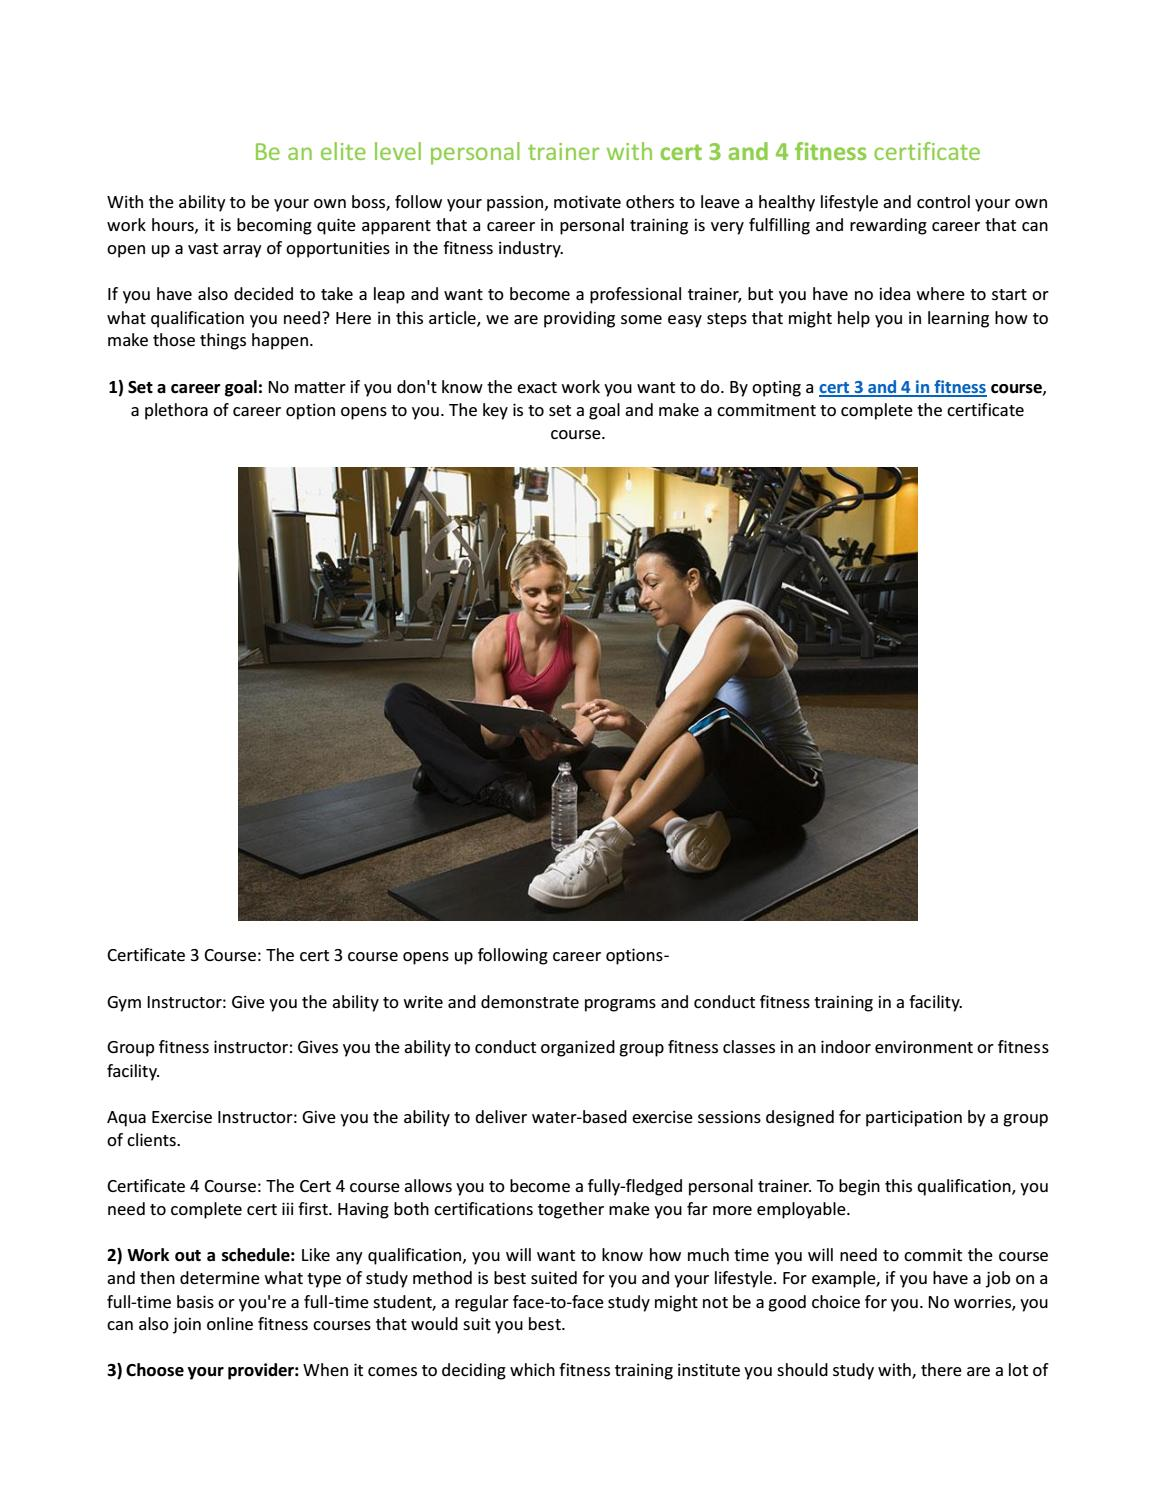 Elite Level Personal Trainer With Cert 3 And 4 Fitness Course By Fit